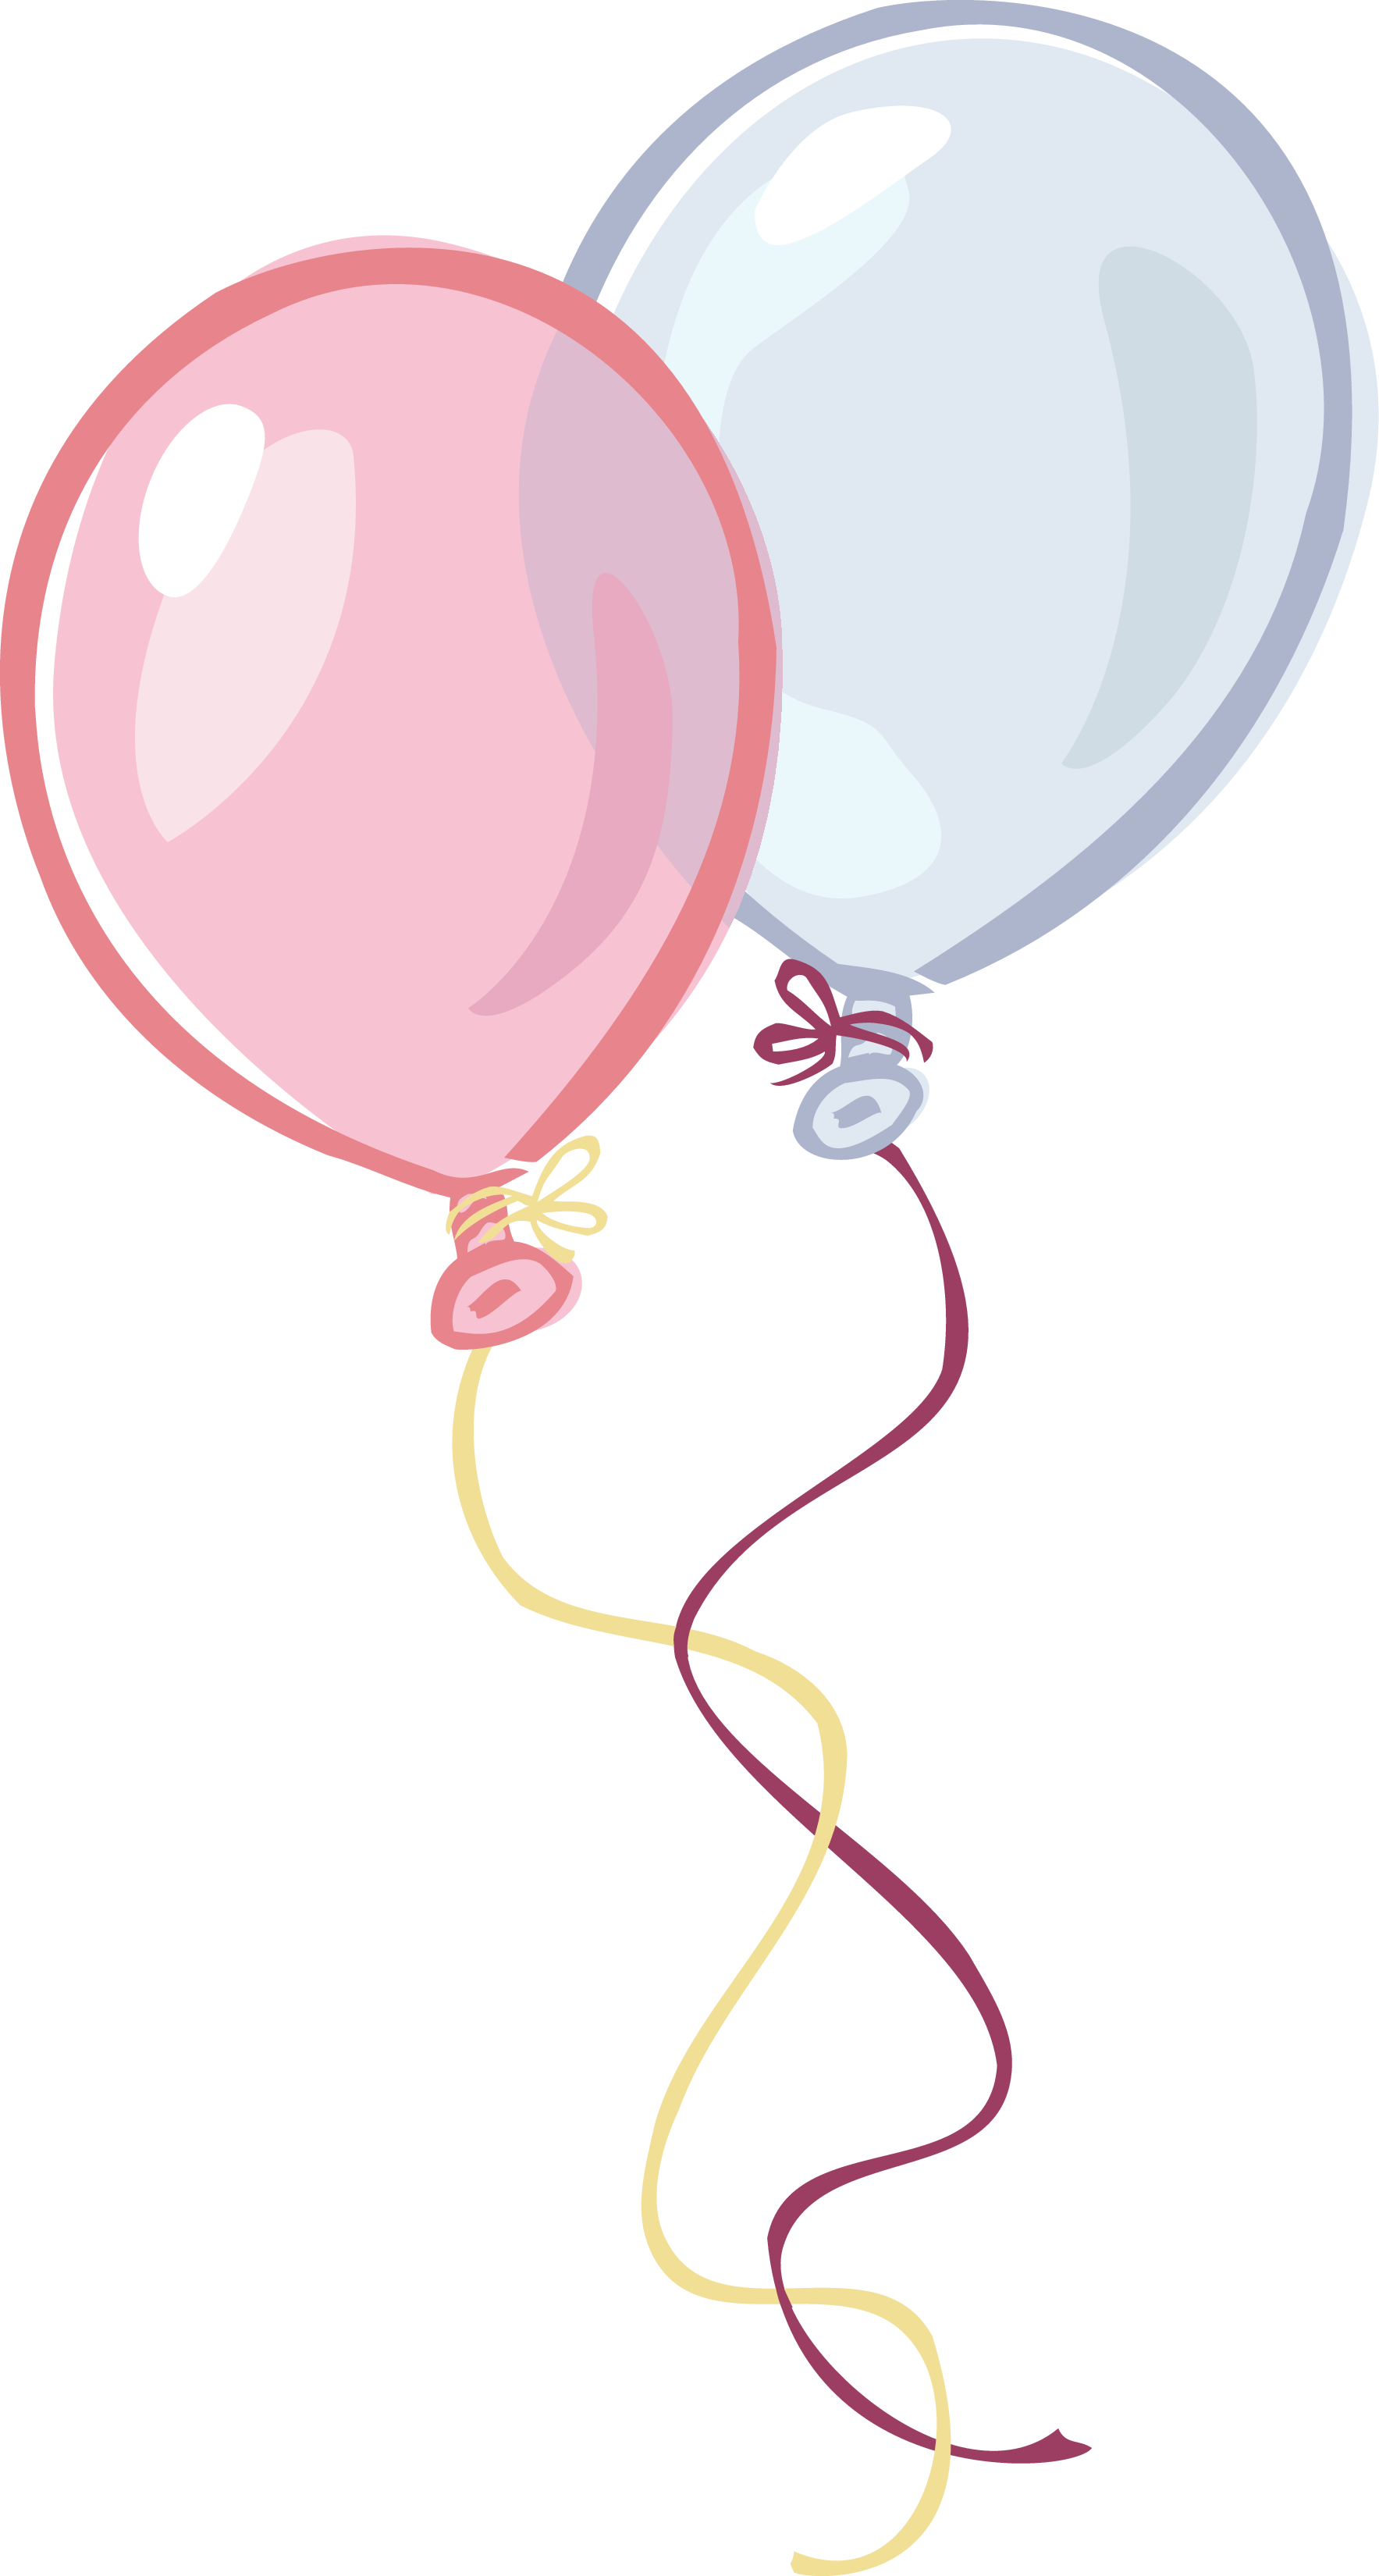 Pink And Blue Birthday Heart Balloons Valentine Purple Balloons Holiday Balloons